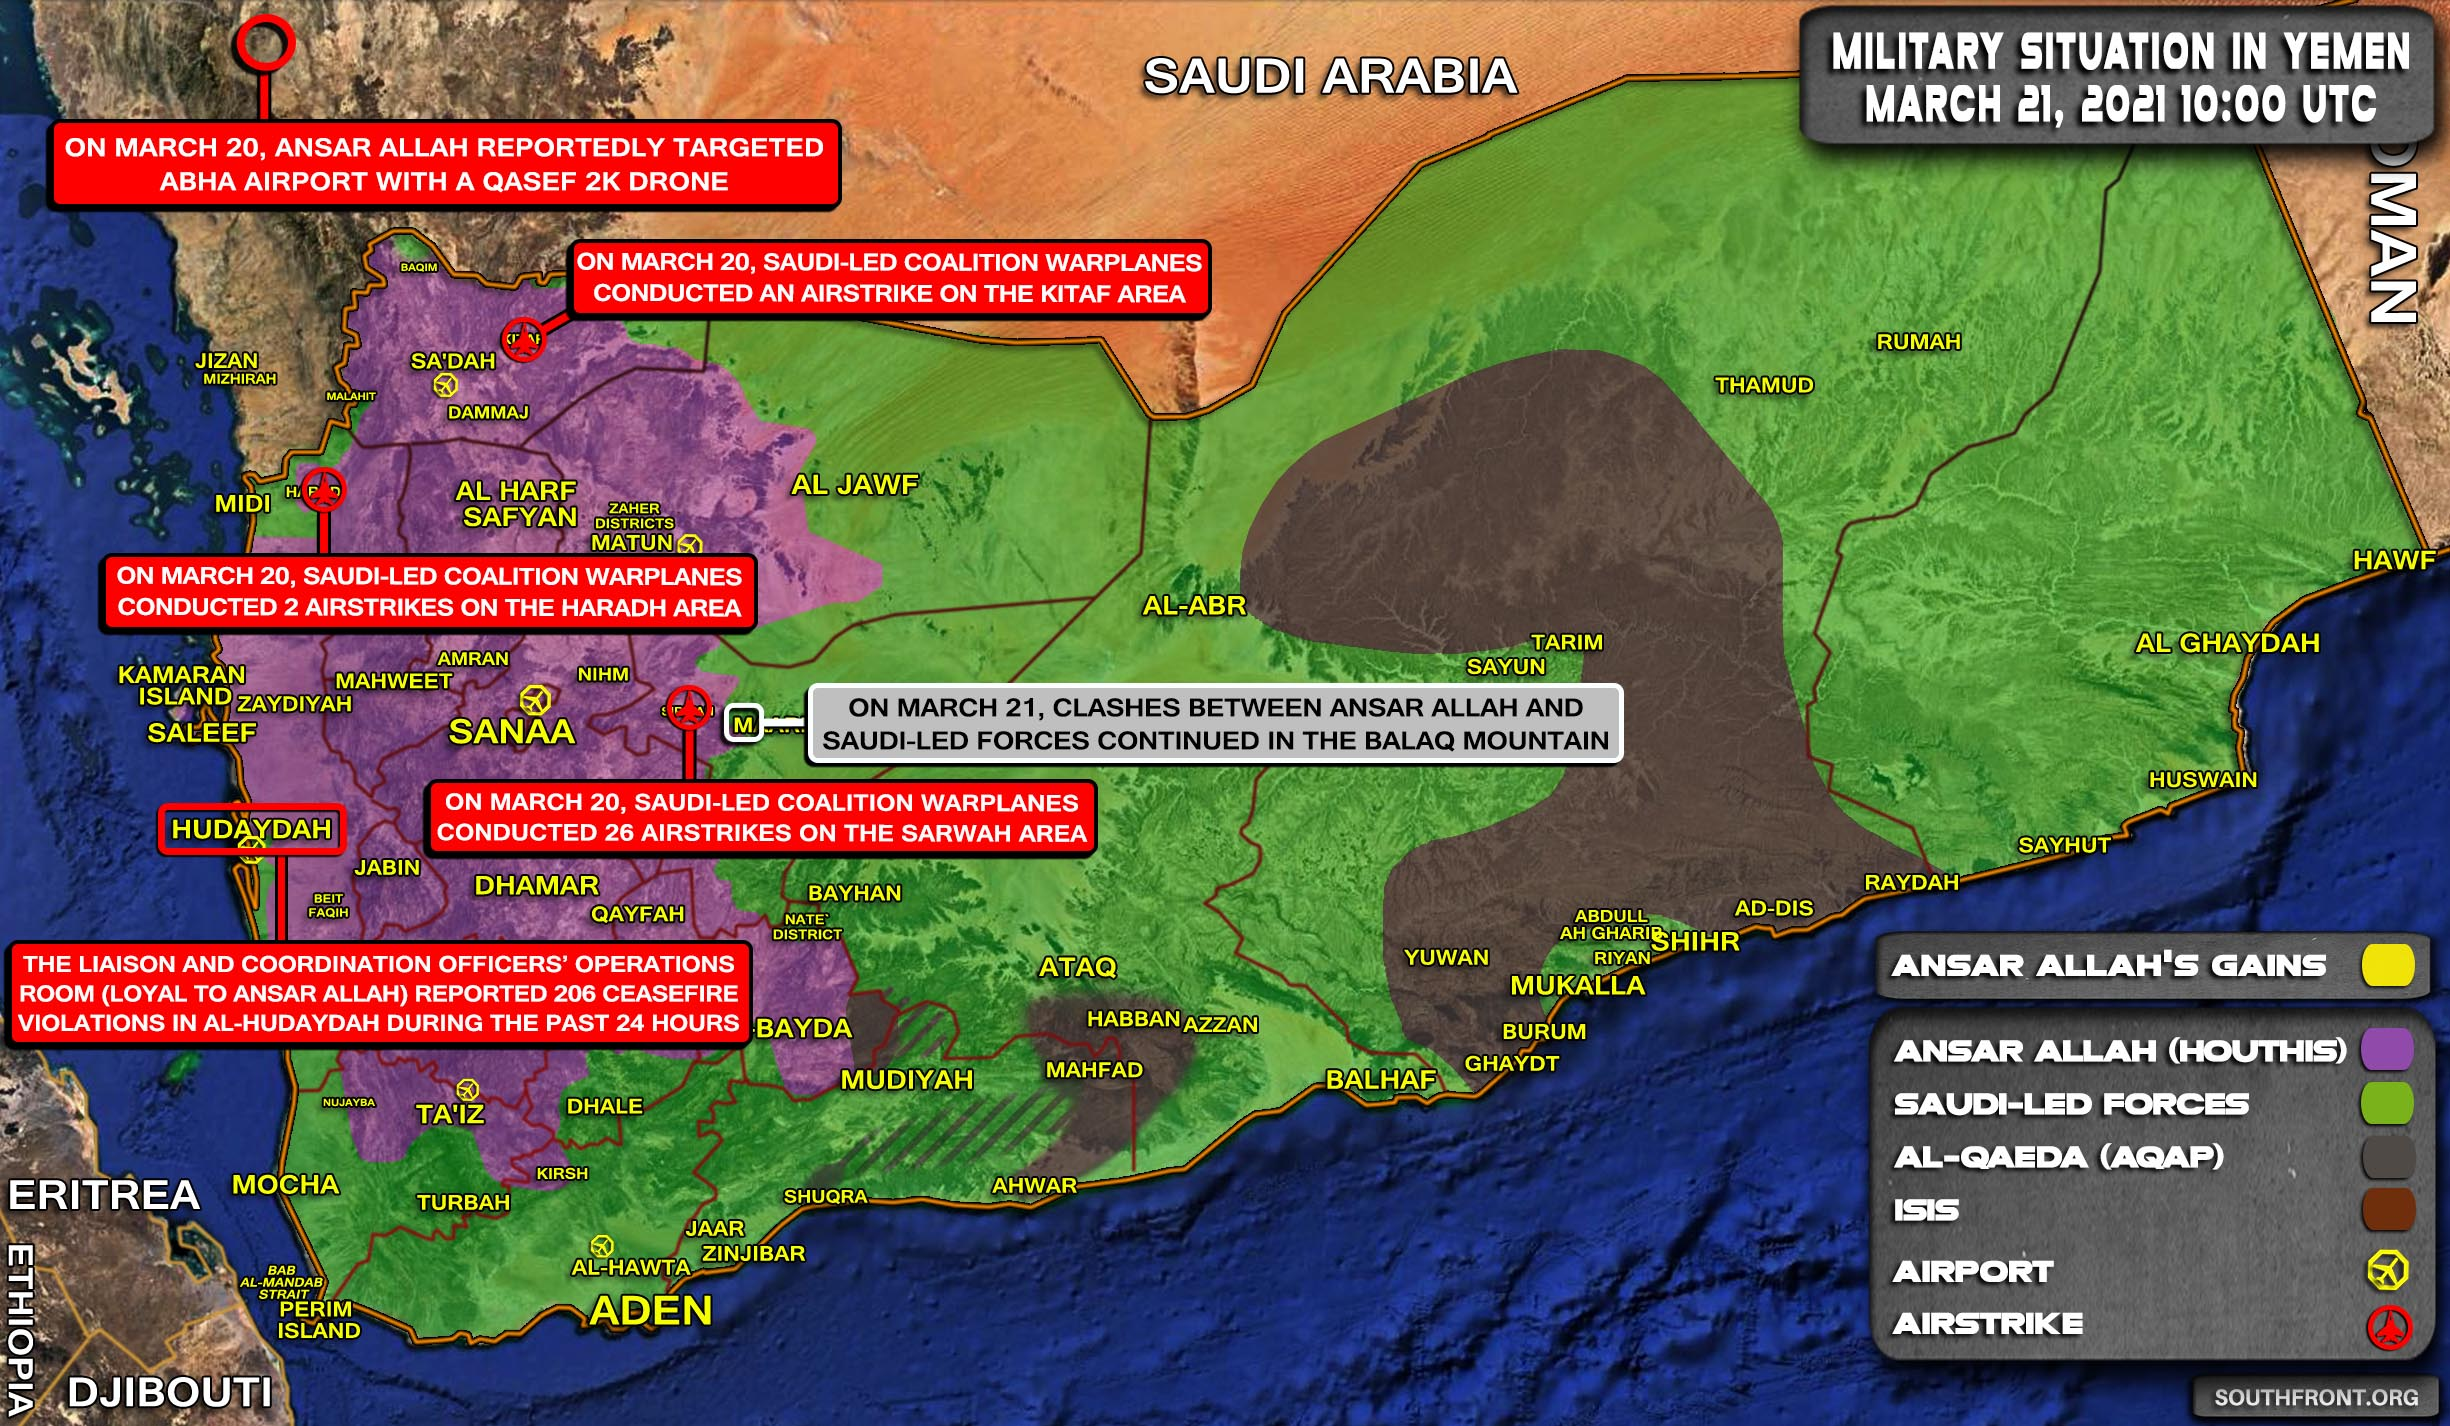 Military Situation In Yemen On March 21, 2021 (Map Update)